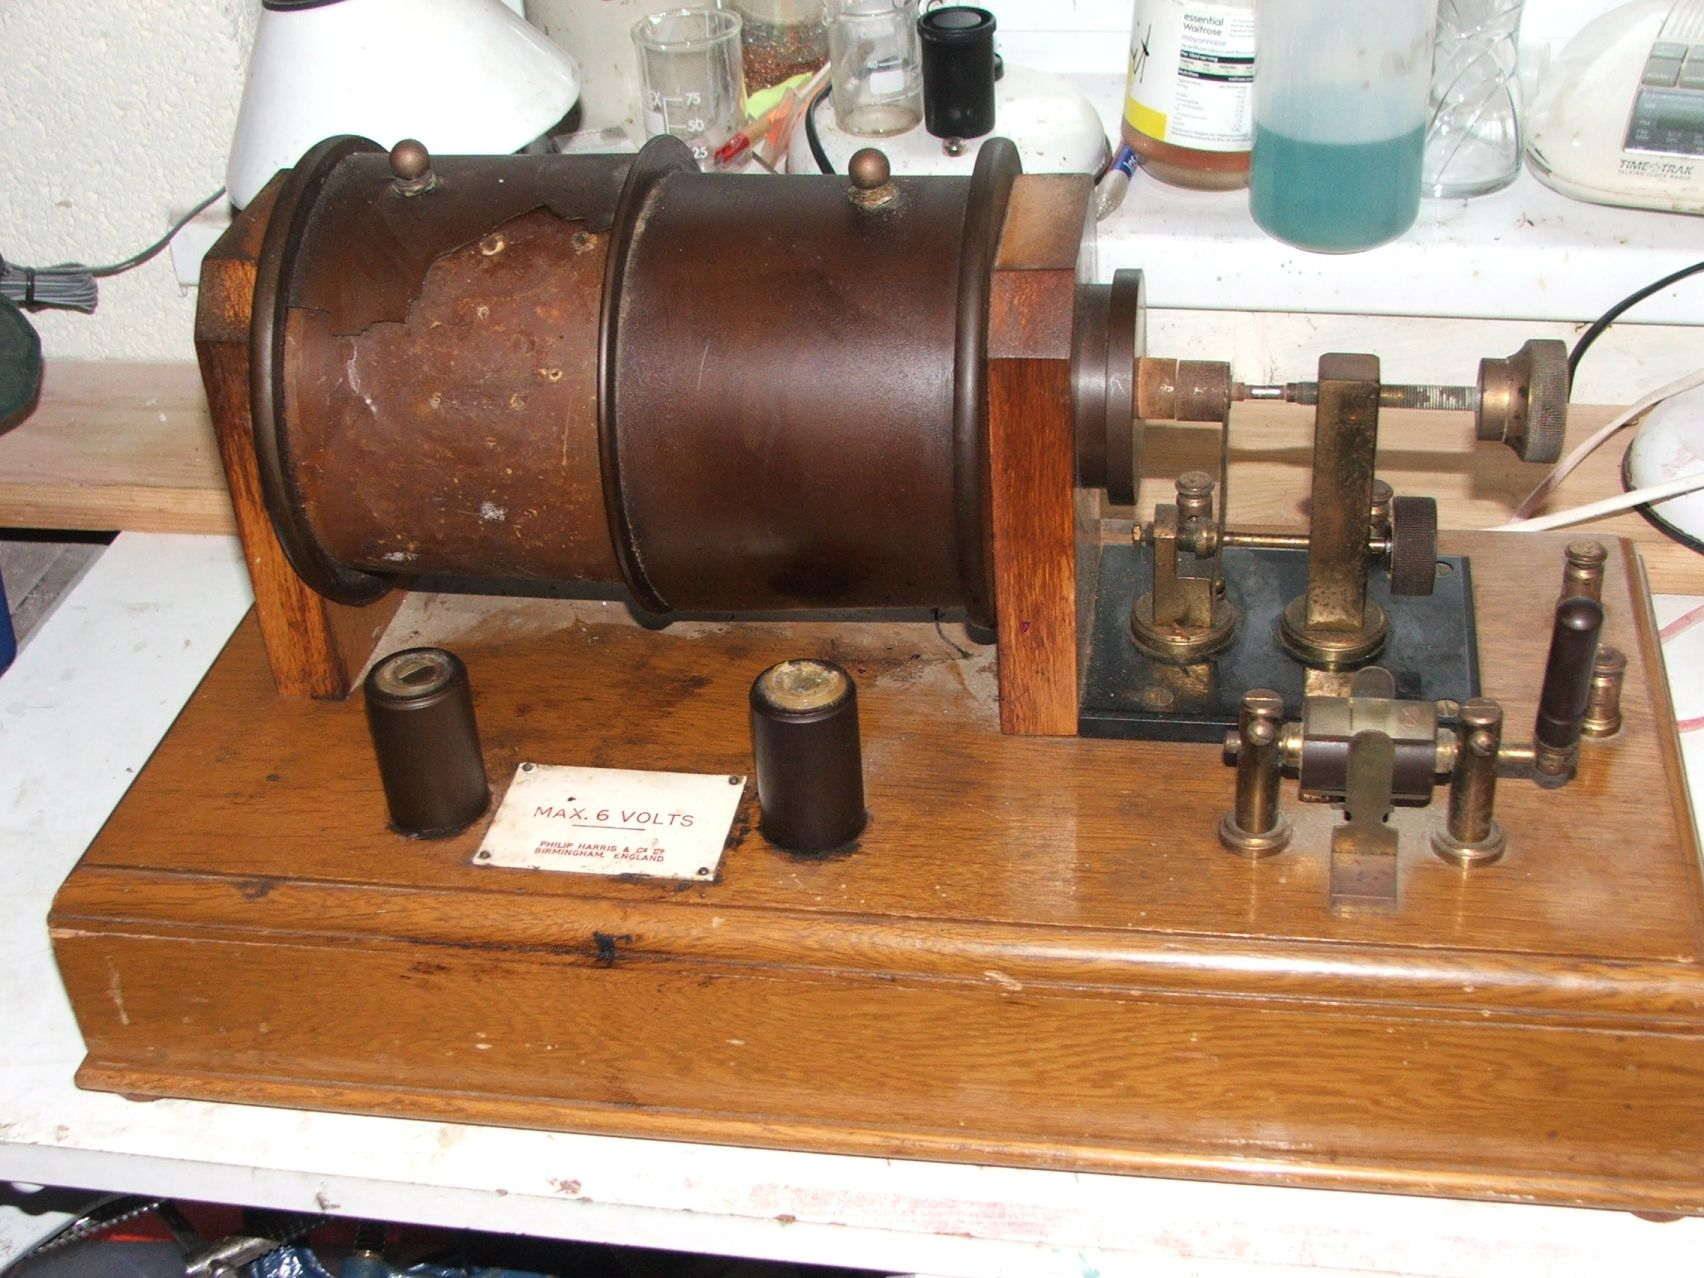 Ruhmkorff Induction coil before restoration